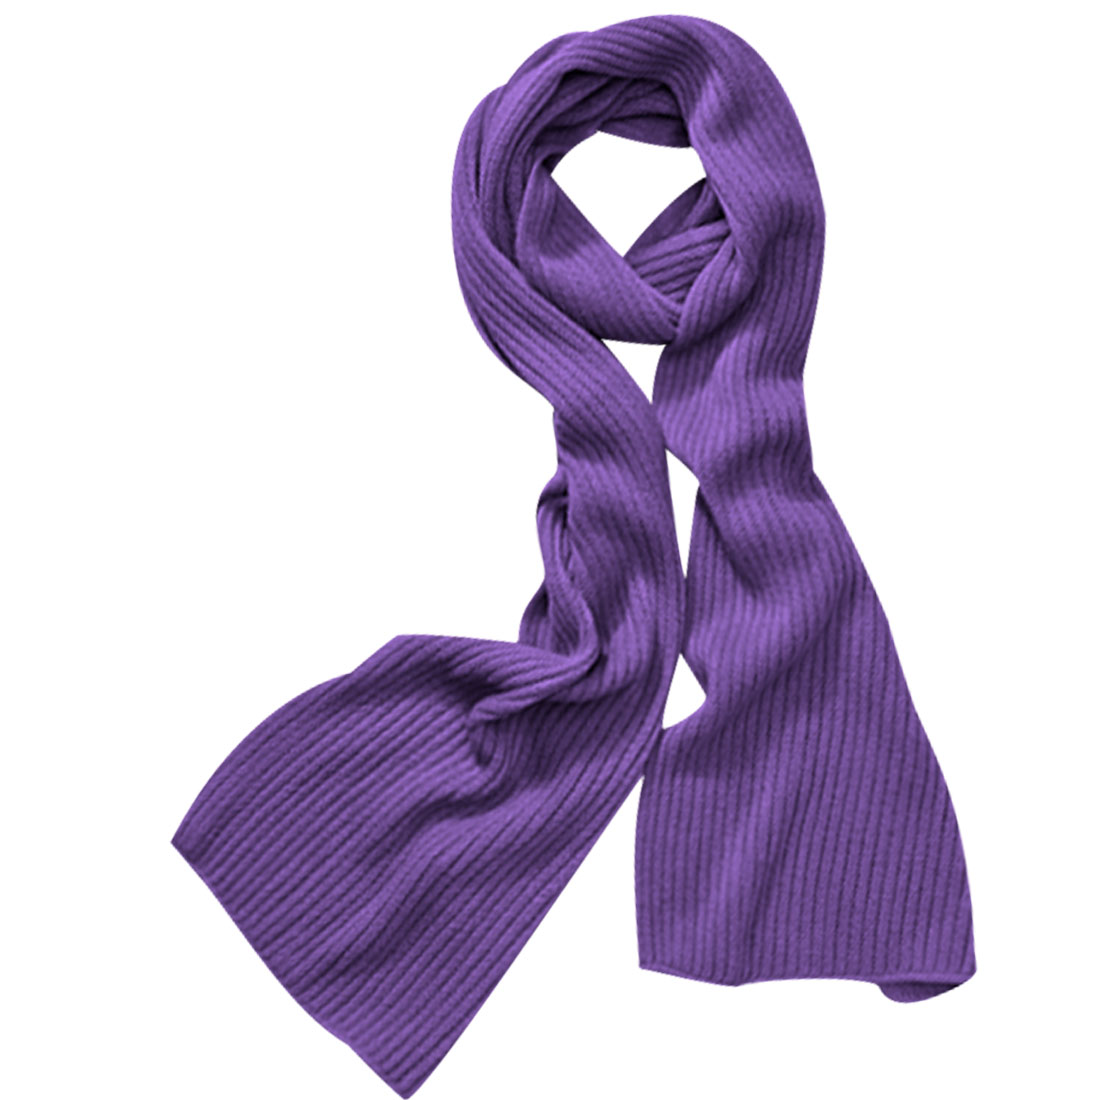 Men Violet Color Rectangular Textured Solid Color Casual Shawl Wrap